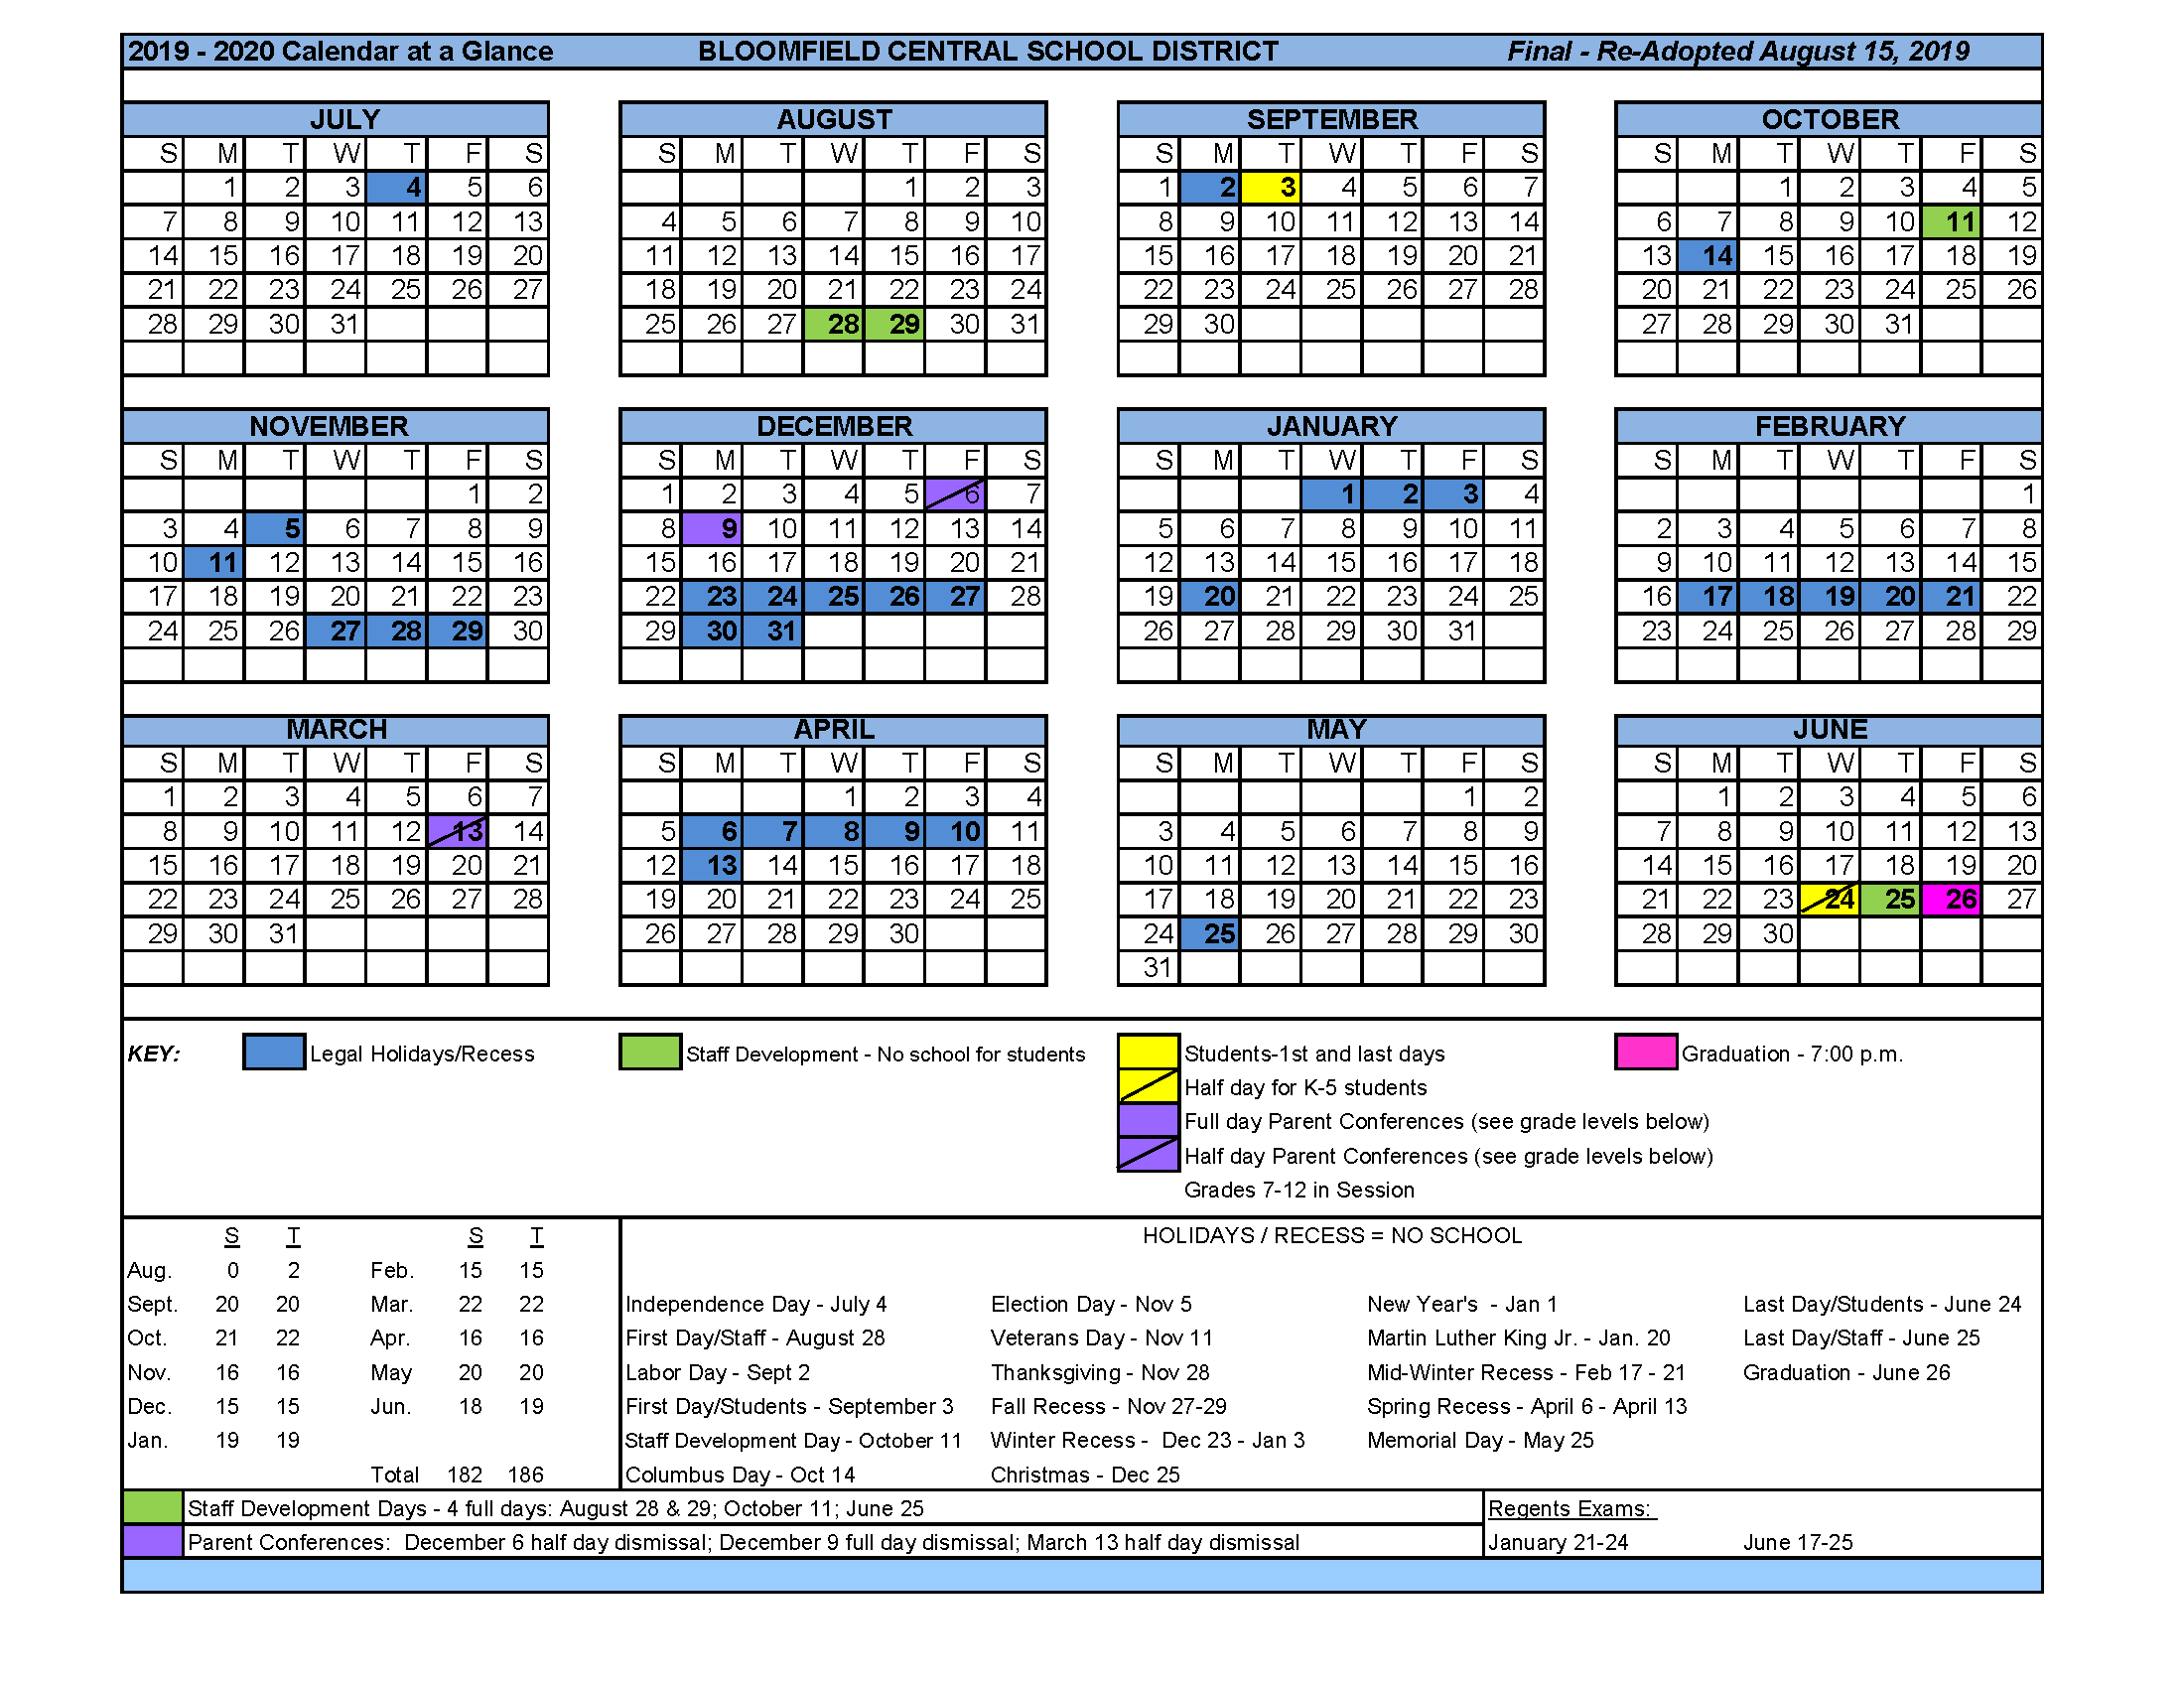 At A Glance Calendar.Calendar At A Glance District Bloomfield Central School District